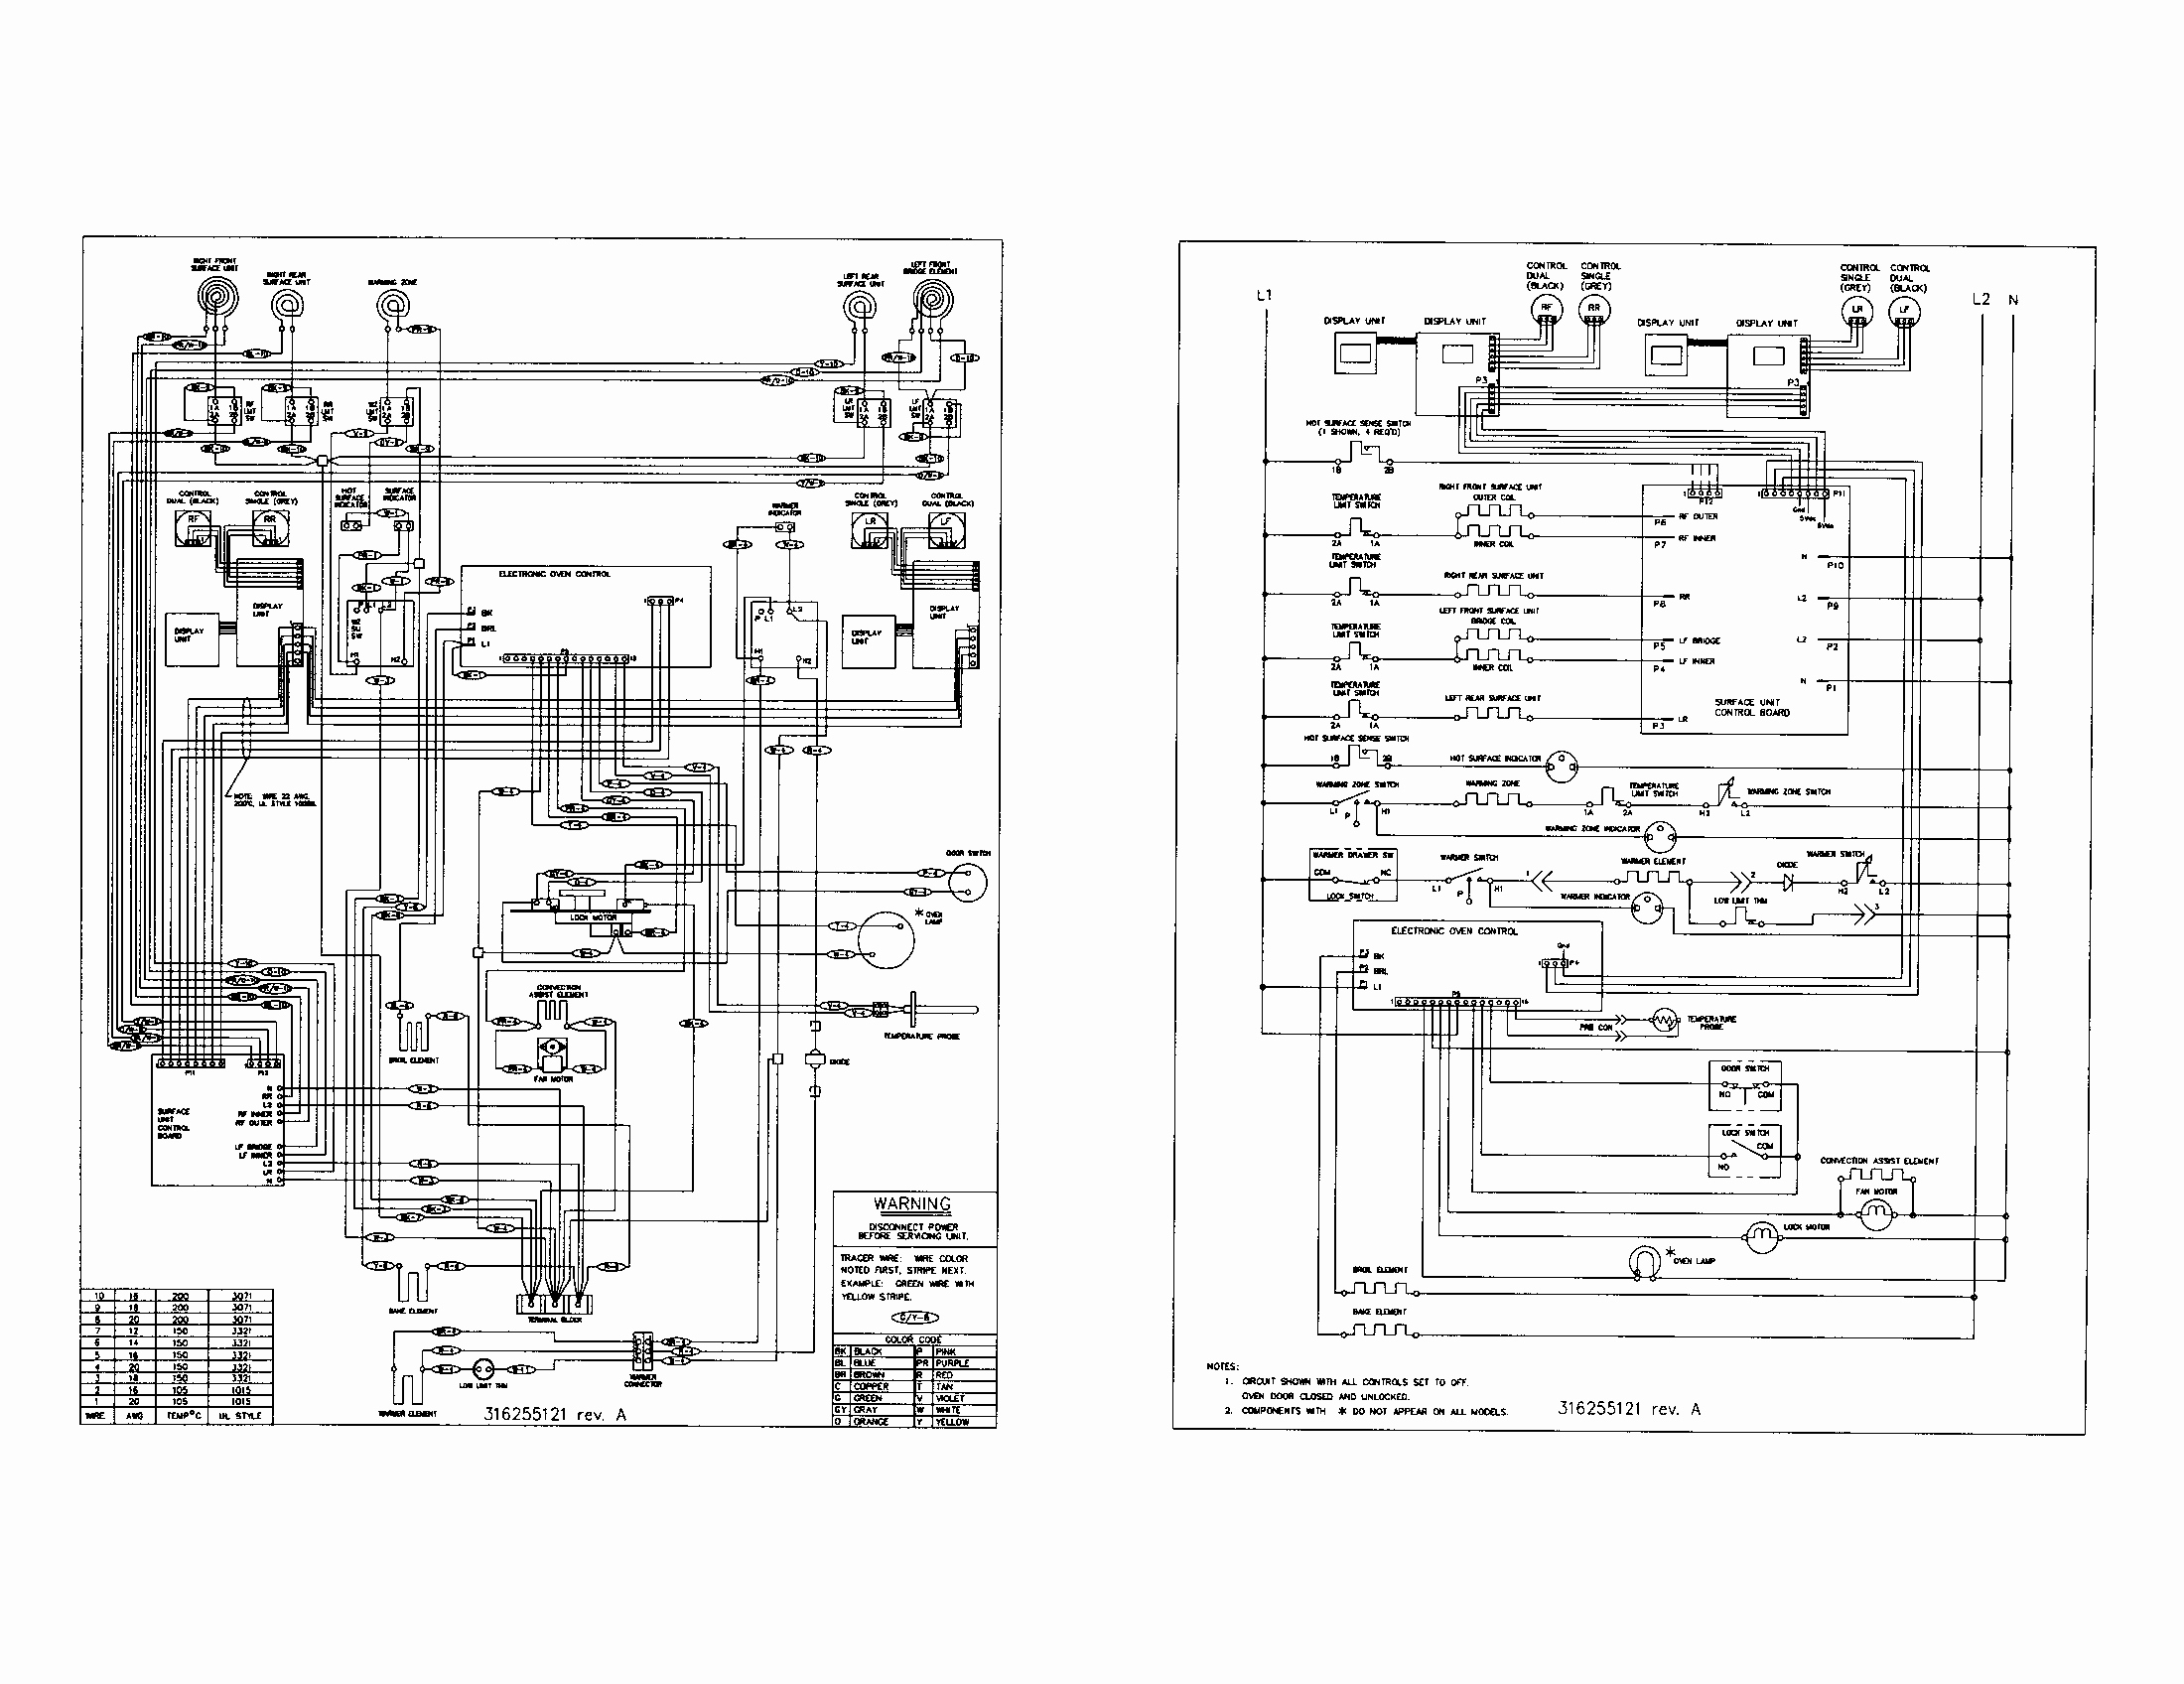 Kitchenaid Dishwasher Wiring Schematic | Manual E-Books - Dishwasher Wiring Diagram